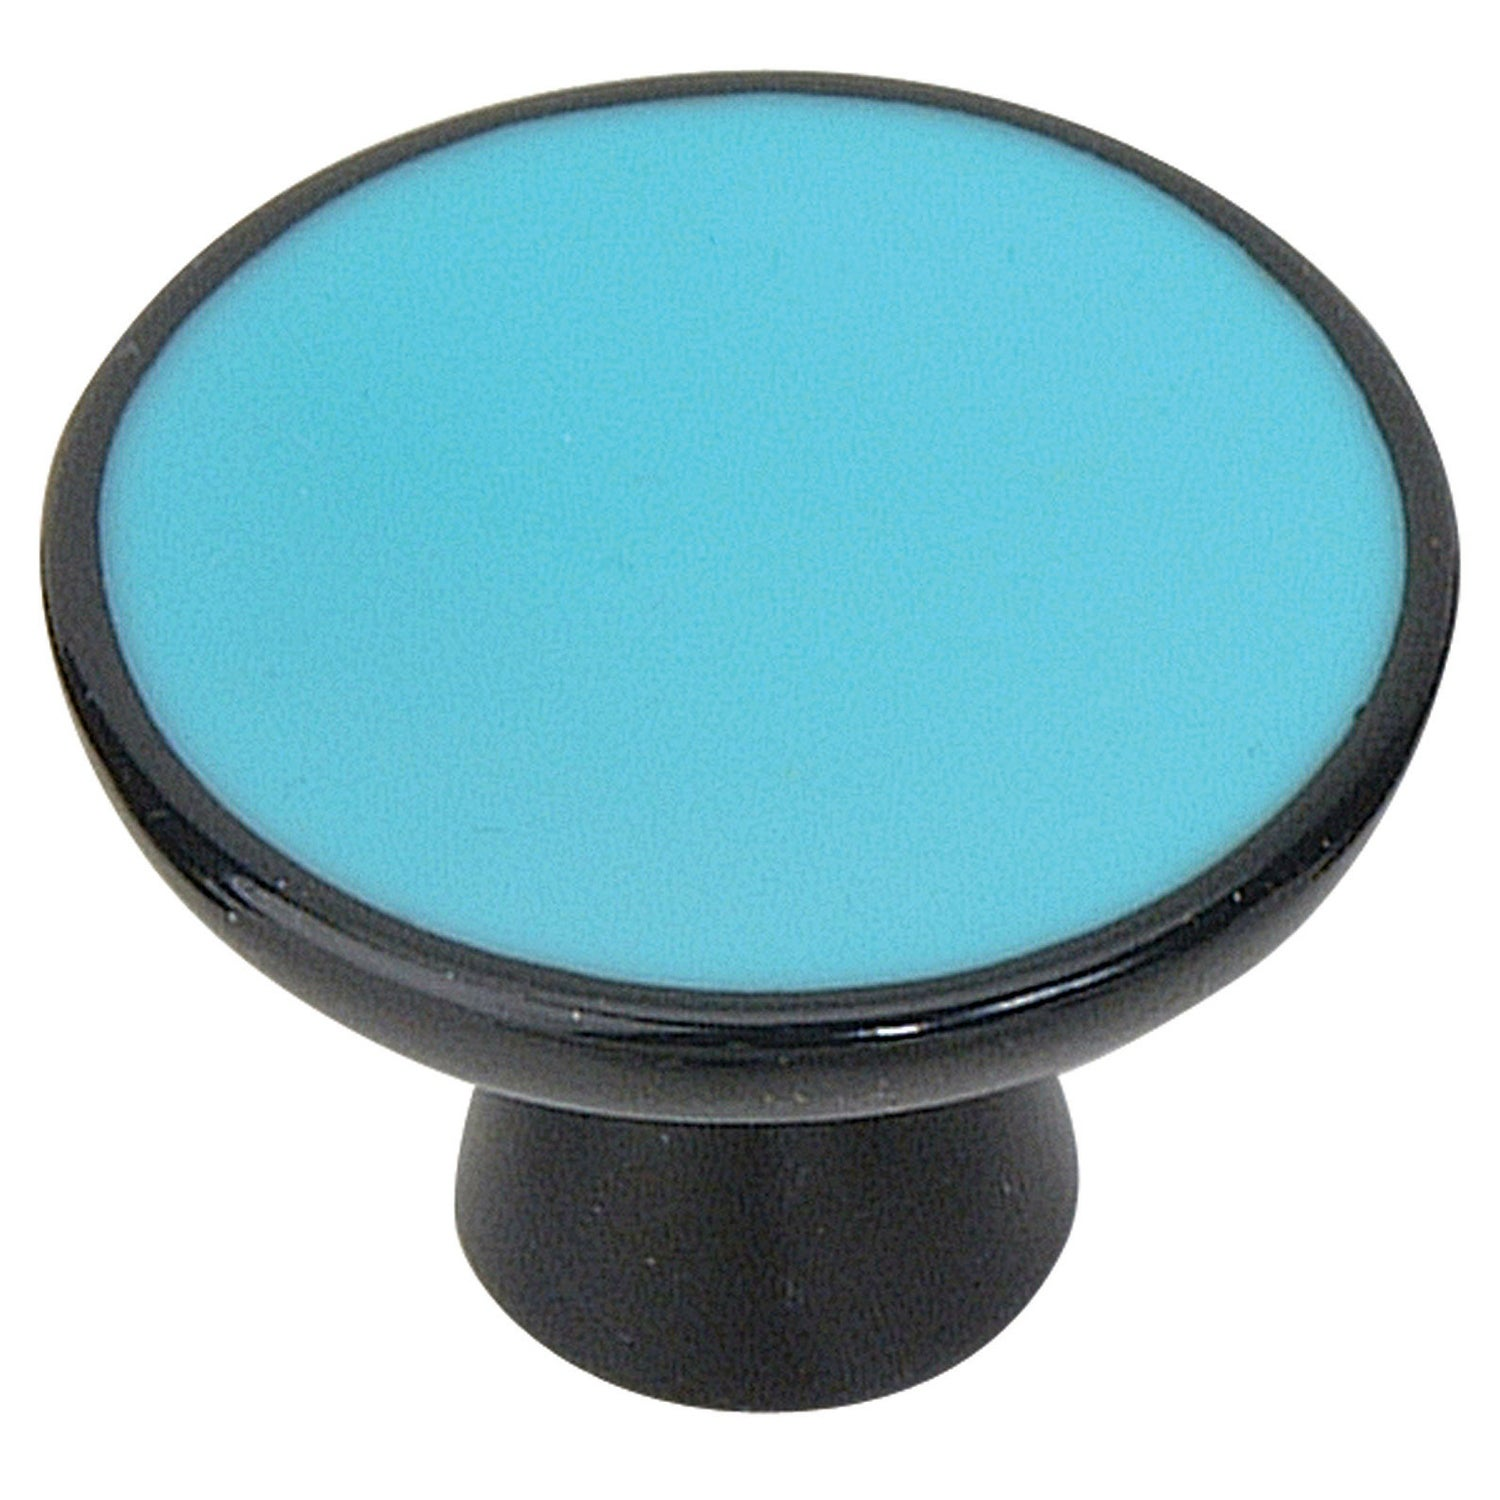 Atlas Homewares 3132  Indochine 2 Diameter Mushroom Cabinet Knob (Blue)